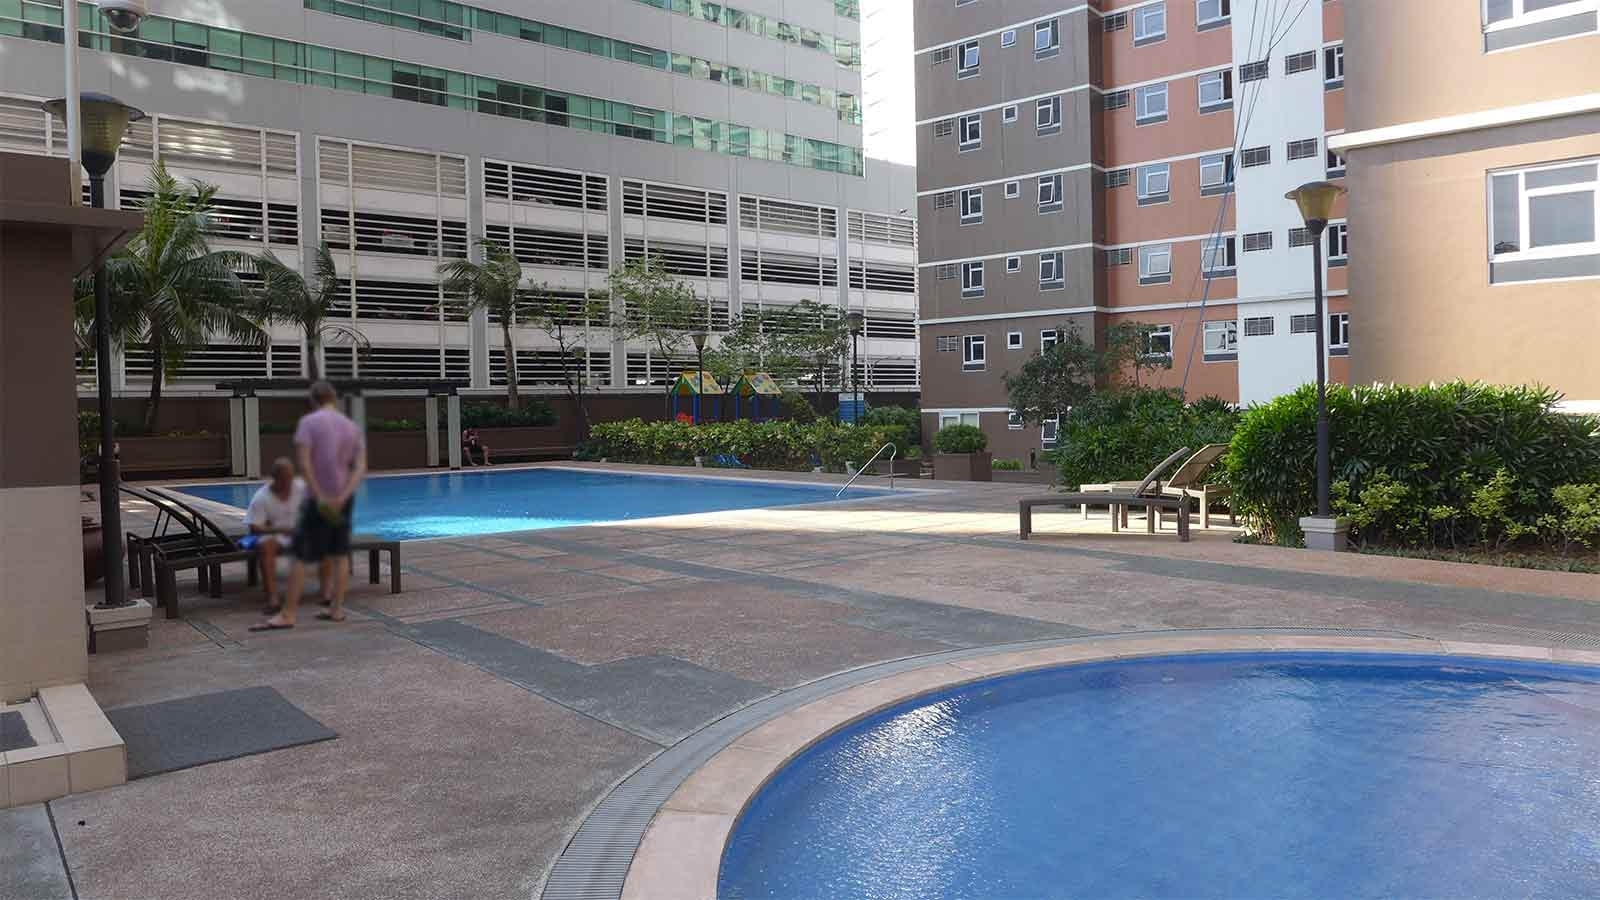 Condo For Sale At Gateway Garden Heights - Property #92253 in Garden Heights Apartments